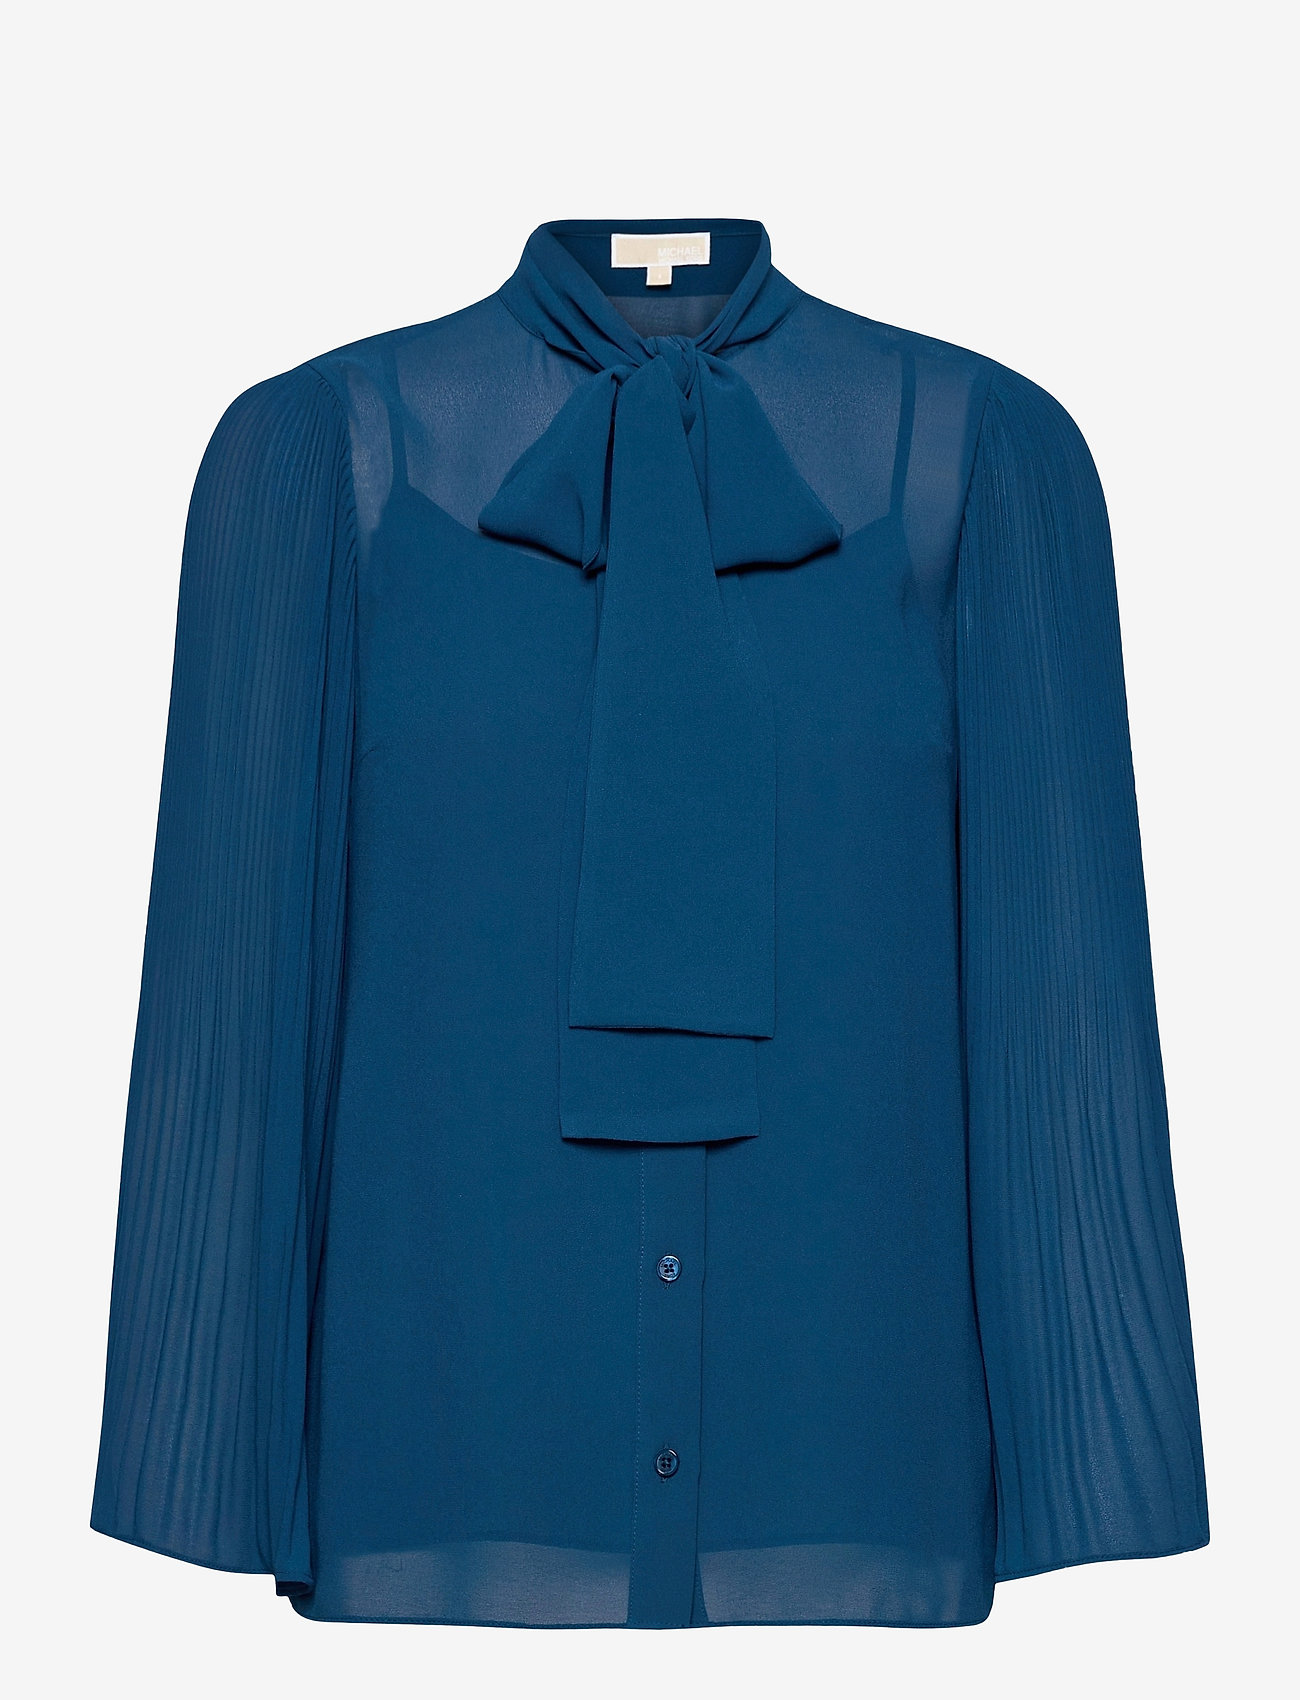 Michael Kors - PLEATED TOP - blouses met lange mouwen - river blue - 0